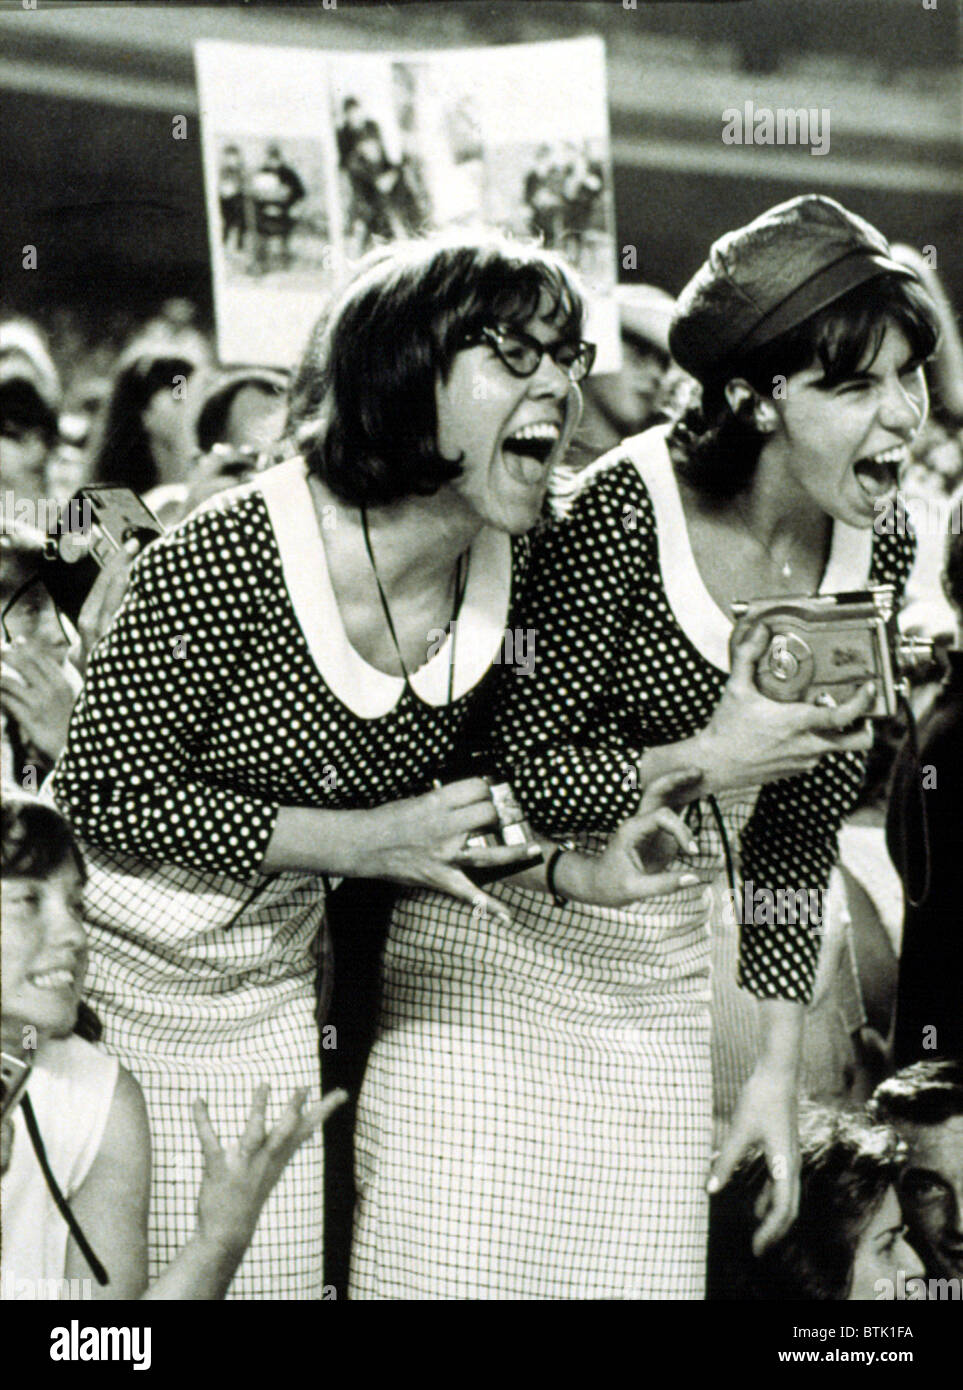 "BEATLES FANS scream at a concert at Shea Stadium, NY, 8/15/65, displaying what is called, ""Beatlemania."" Stock Foto"